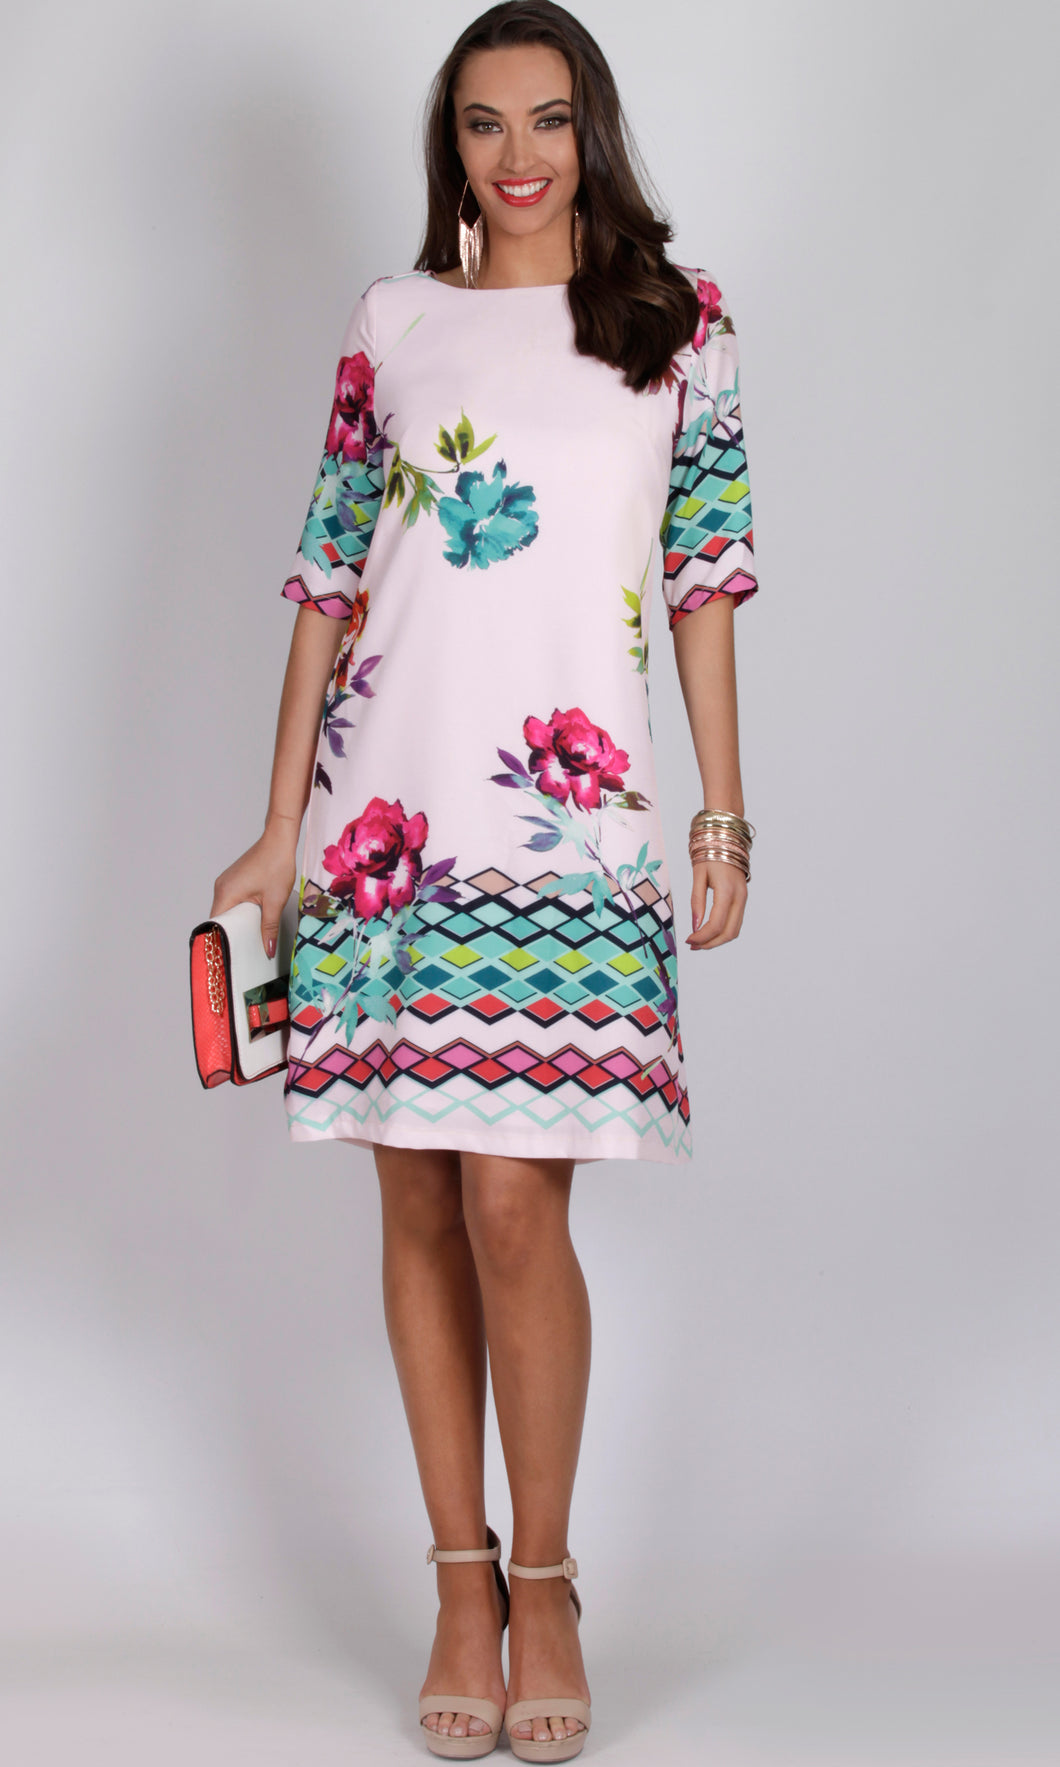 Retro 3/4 Sleeve Shift Dress